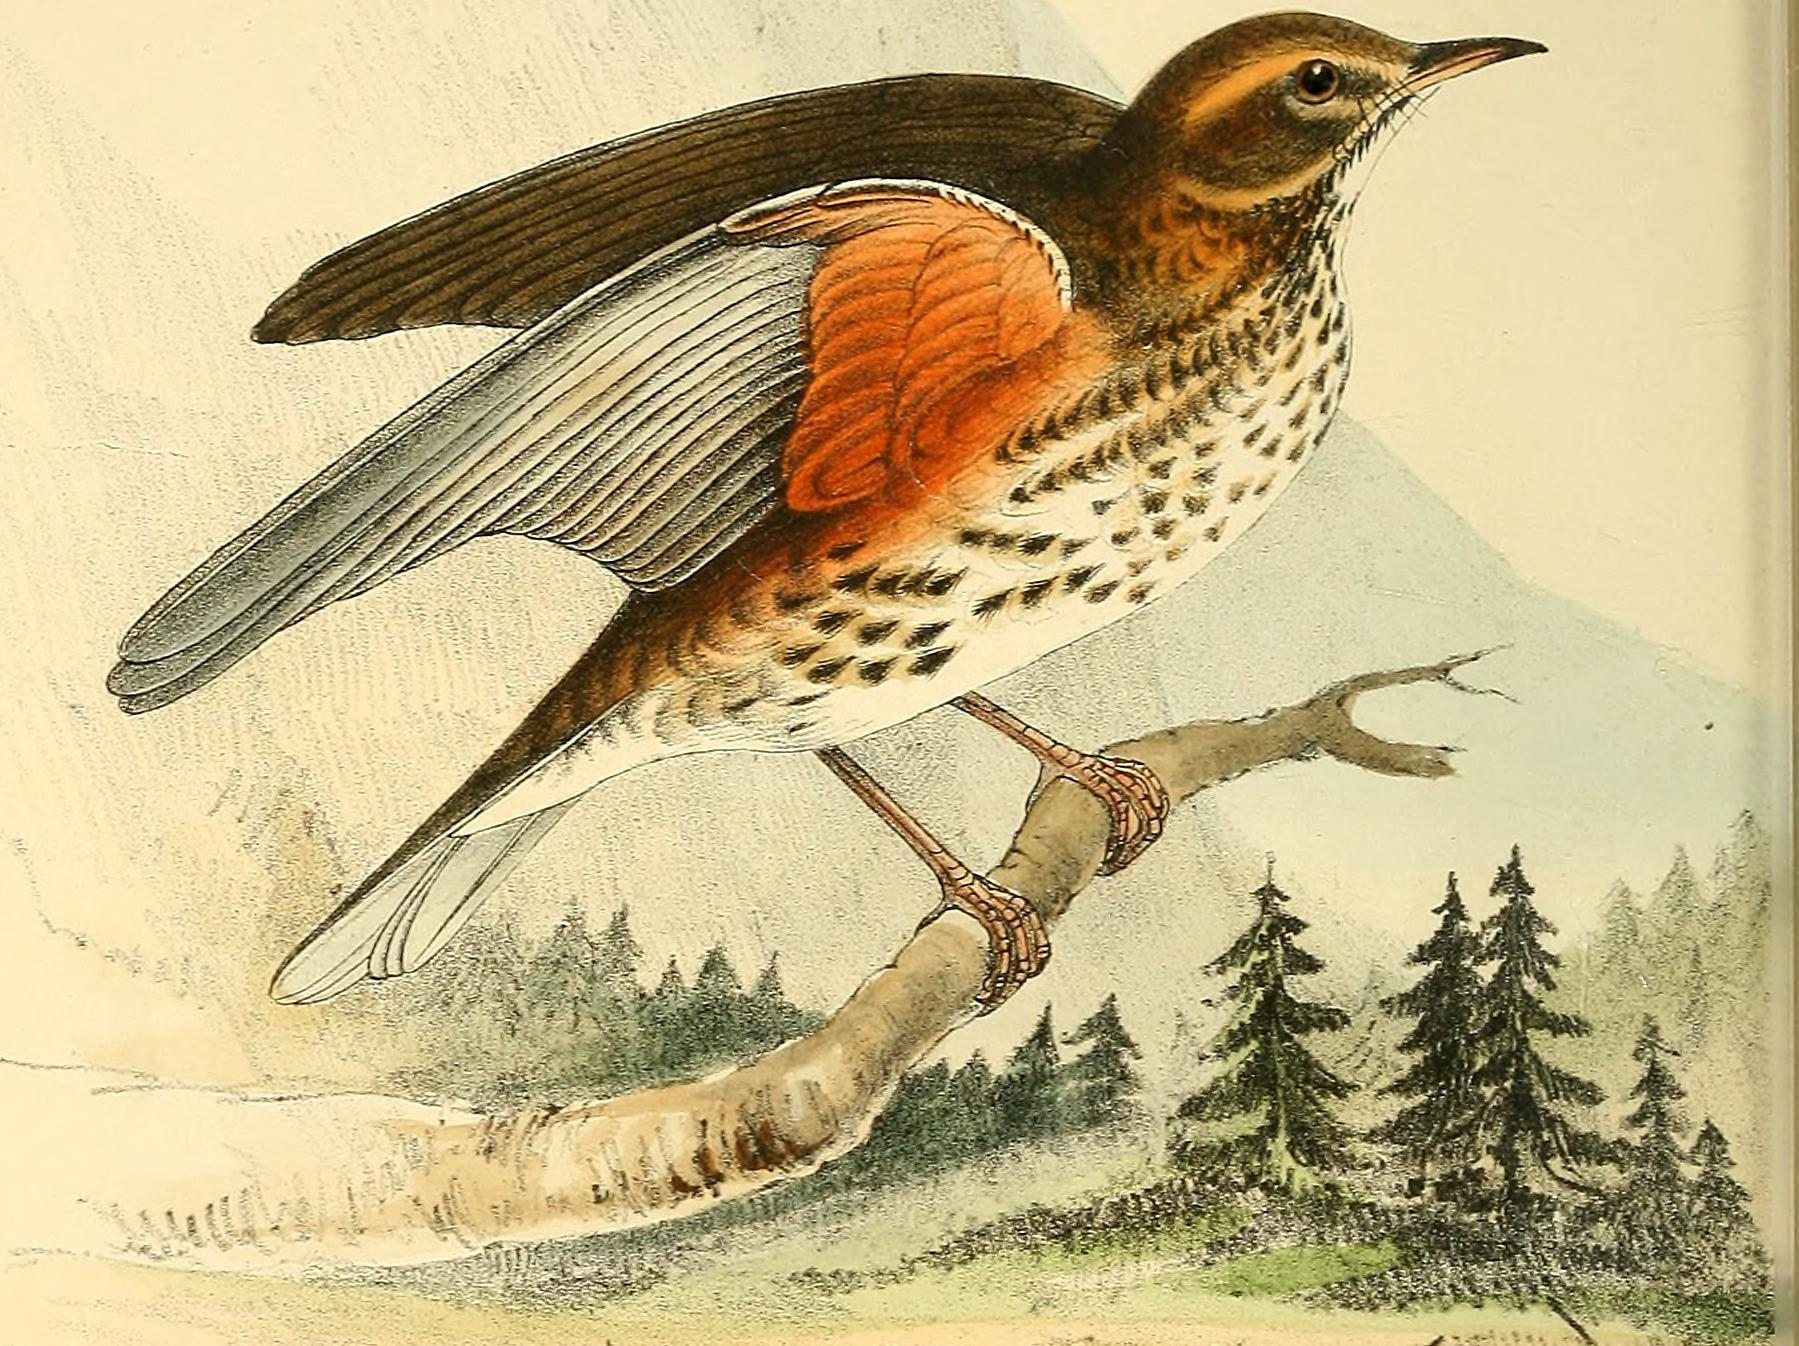 A redwing engraved in 'Coloured Illustrations of British Birds, and Their Eggs' (H. L. Meyer, 1842)